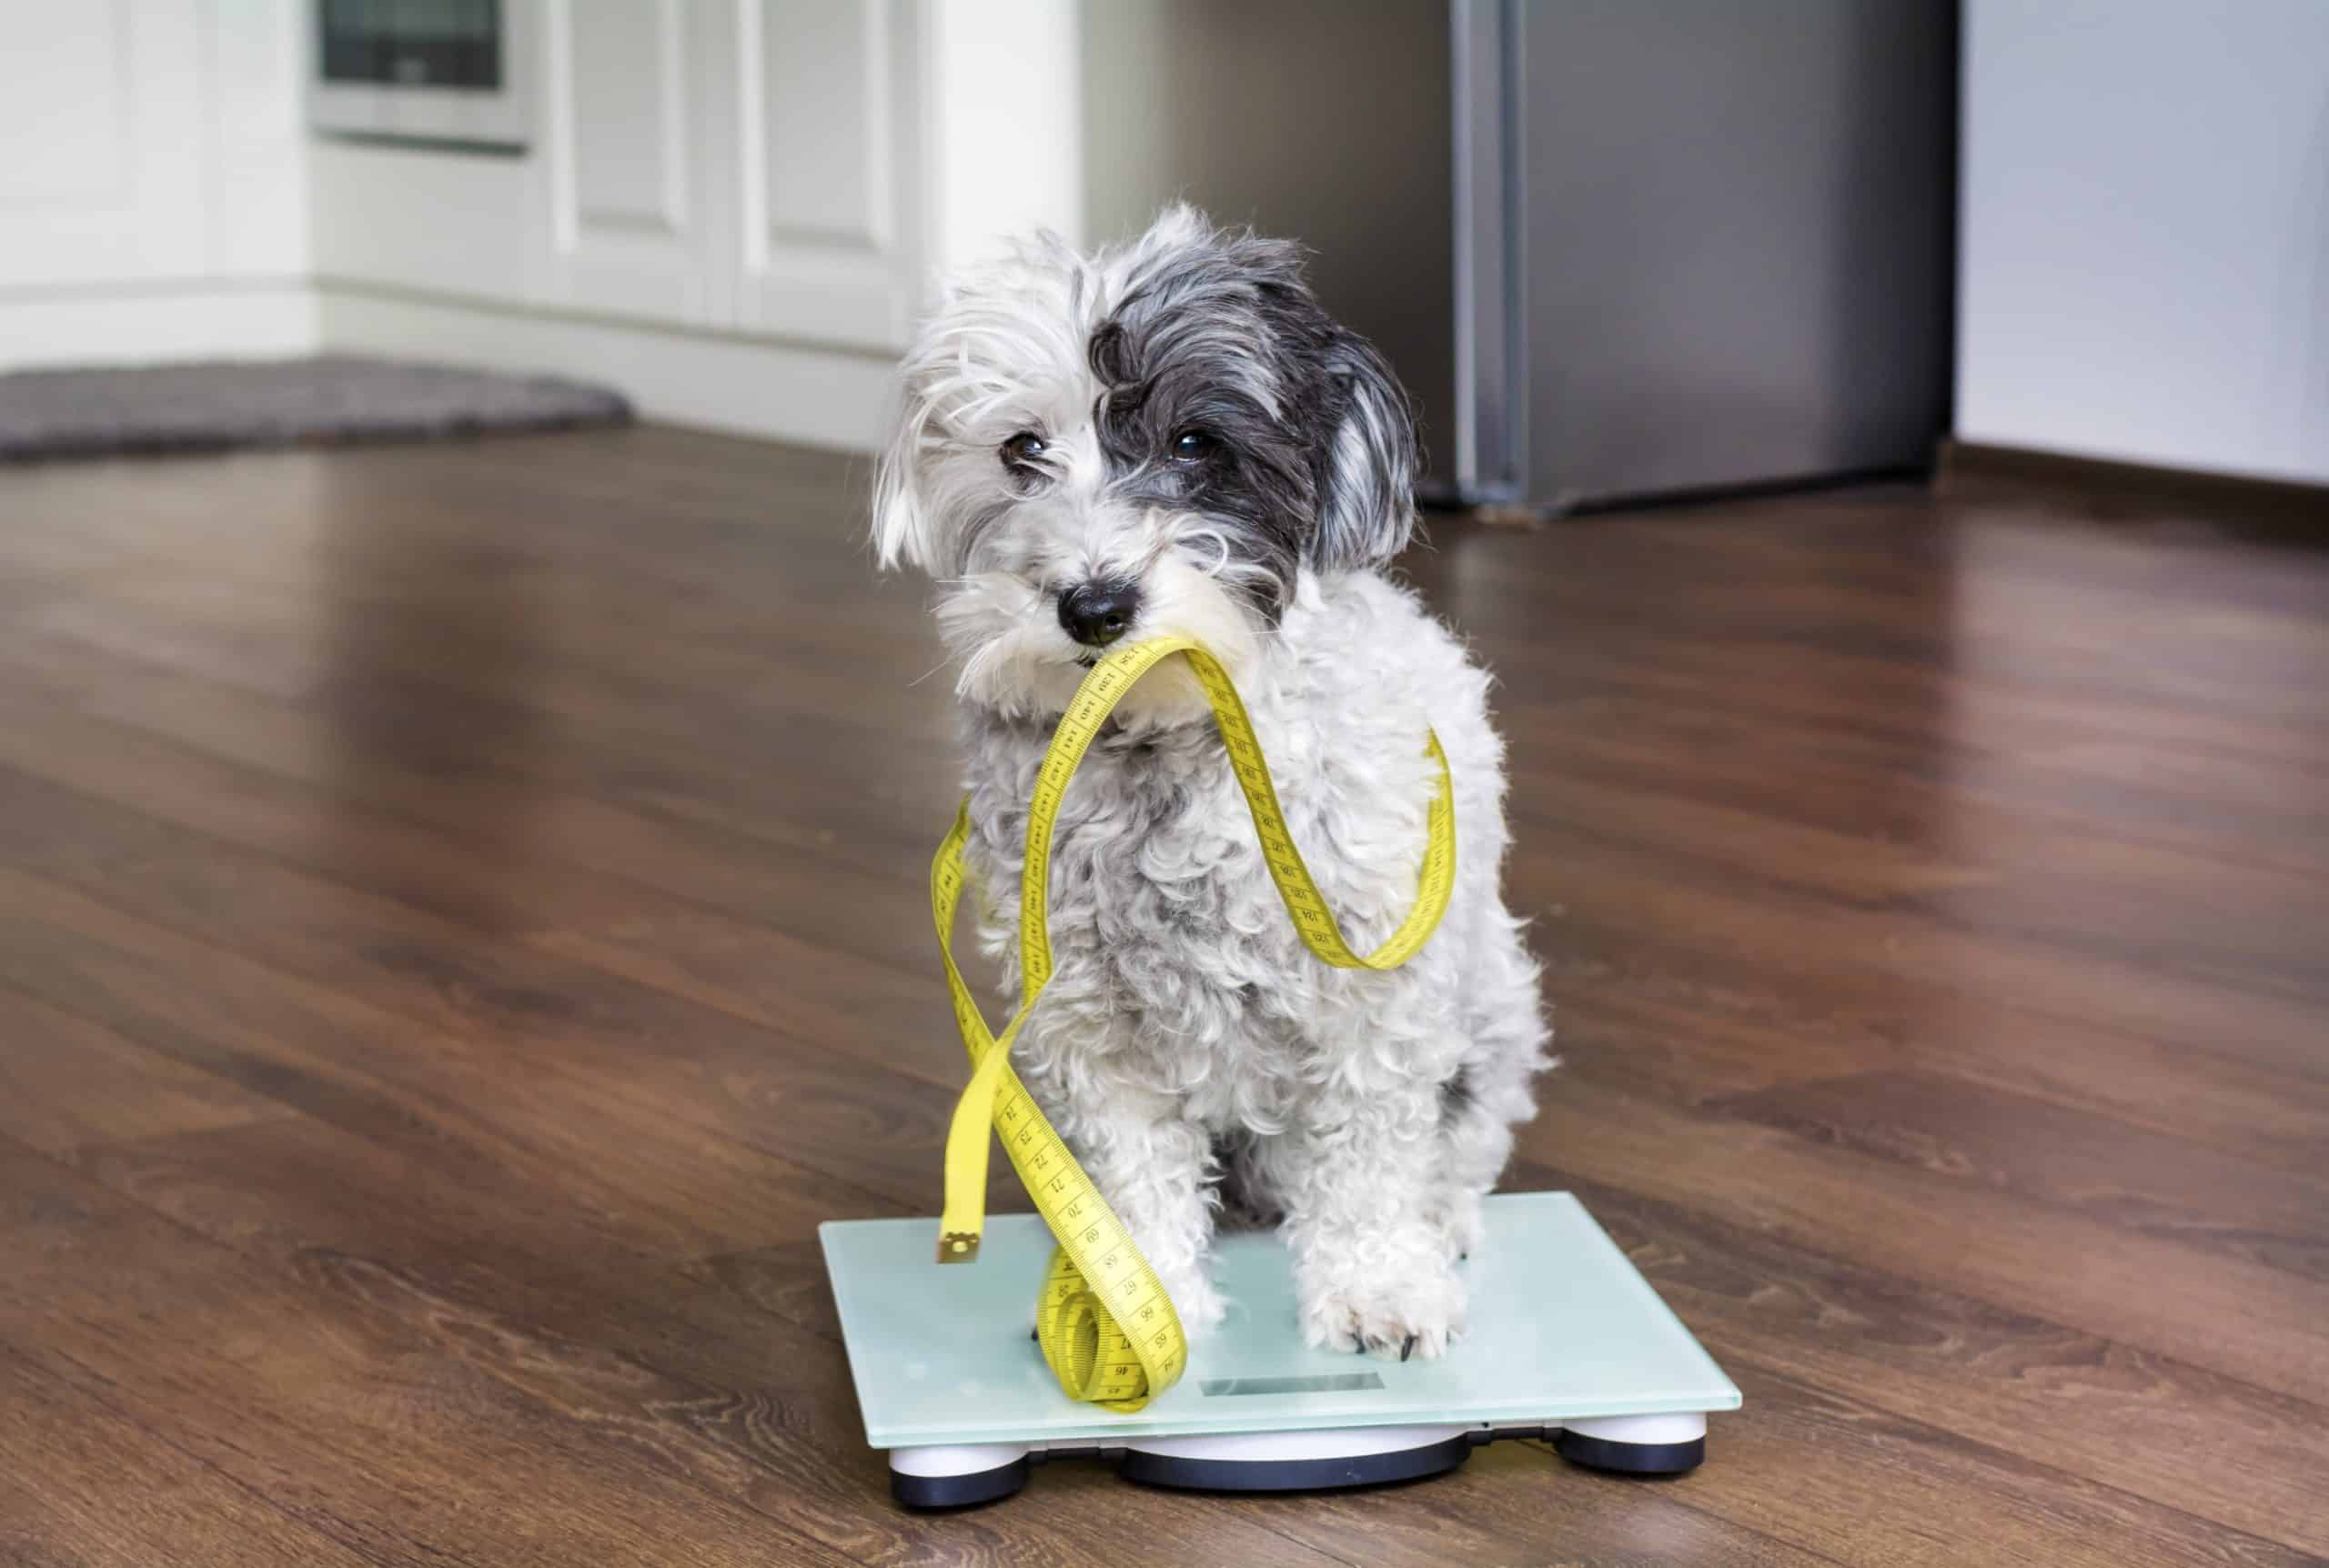 Poodle sits on a scale. Studies show pets' pandemic weight gain fueled by too many treats and not enough exercise.